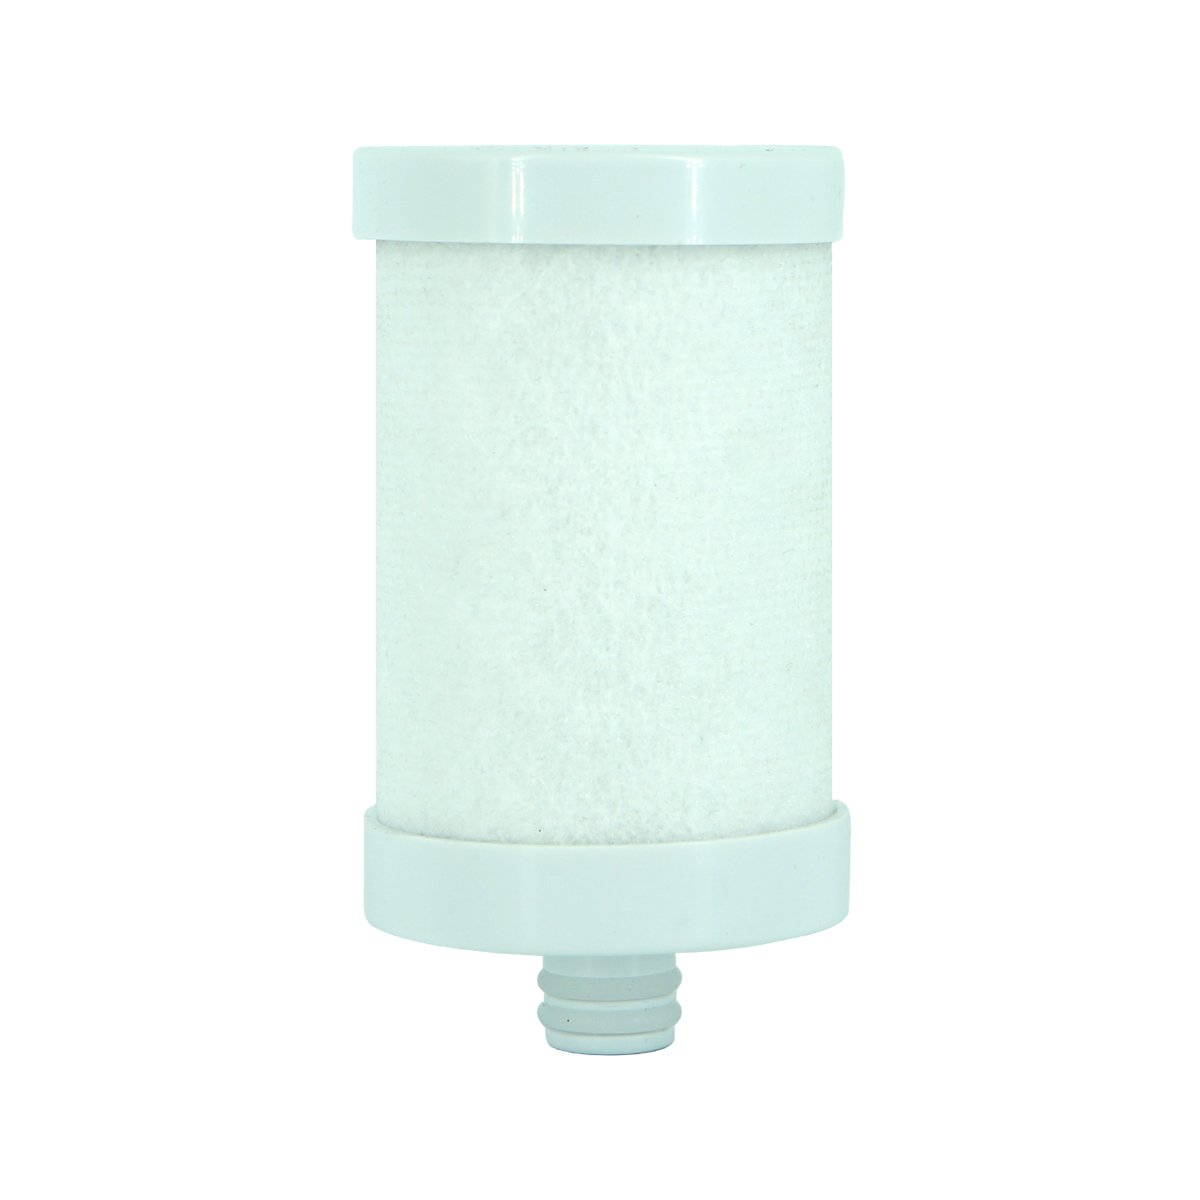 Engdenton Stainless Steel Water Filter Cartridge Replacement, Kitchen Filtration(For Stainless Steel Filters ASIN: B07DCMD991)